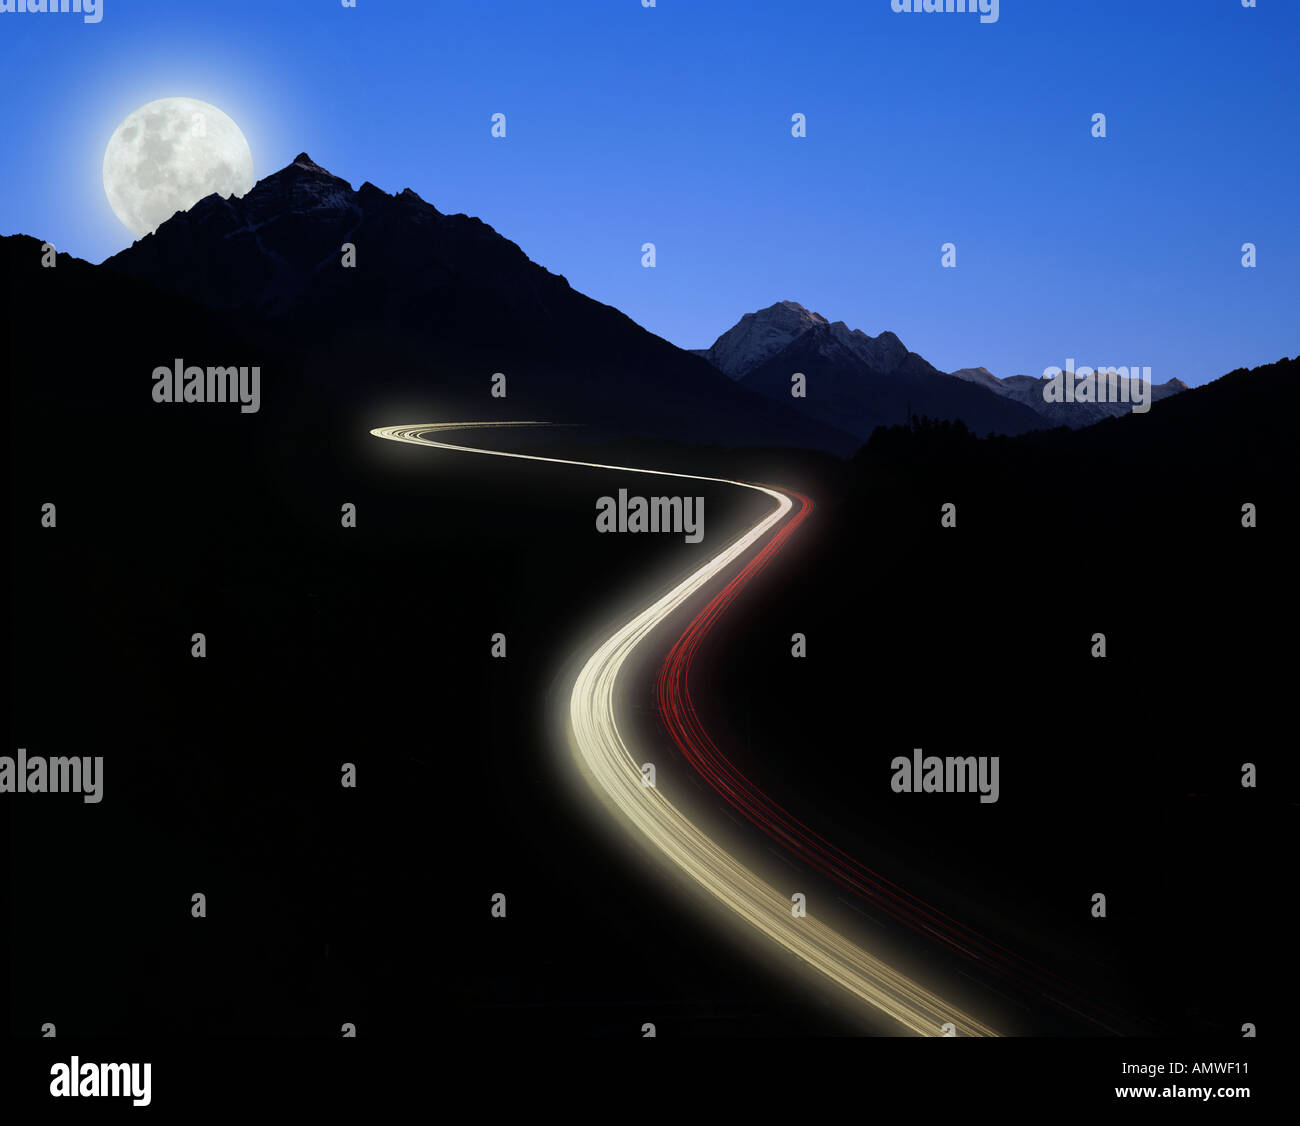 AT - TYROL: Brenner Autobahn by night - Stock Image